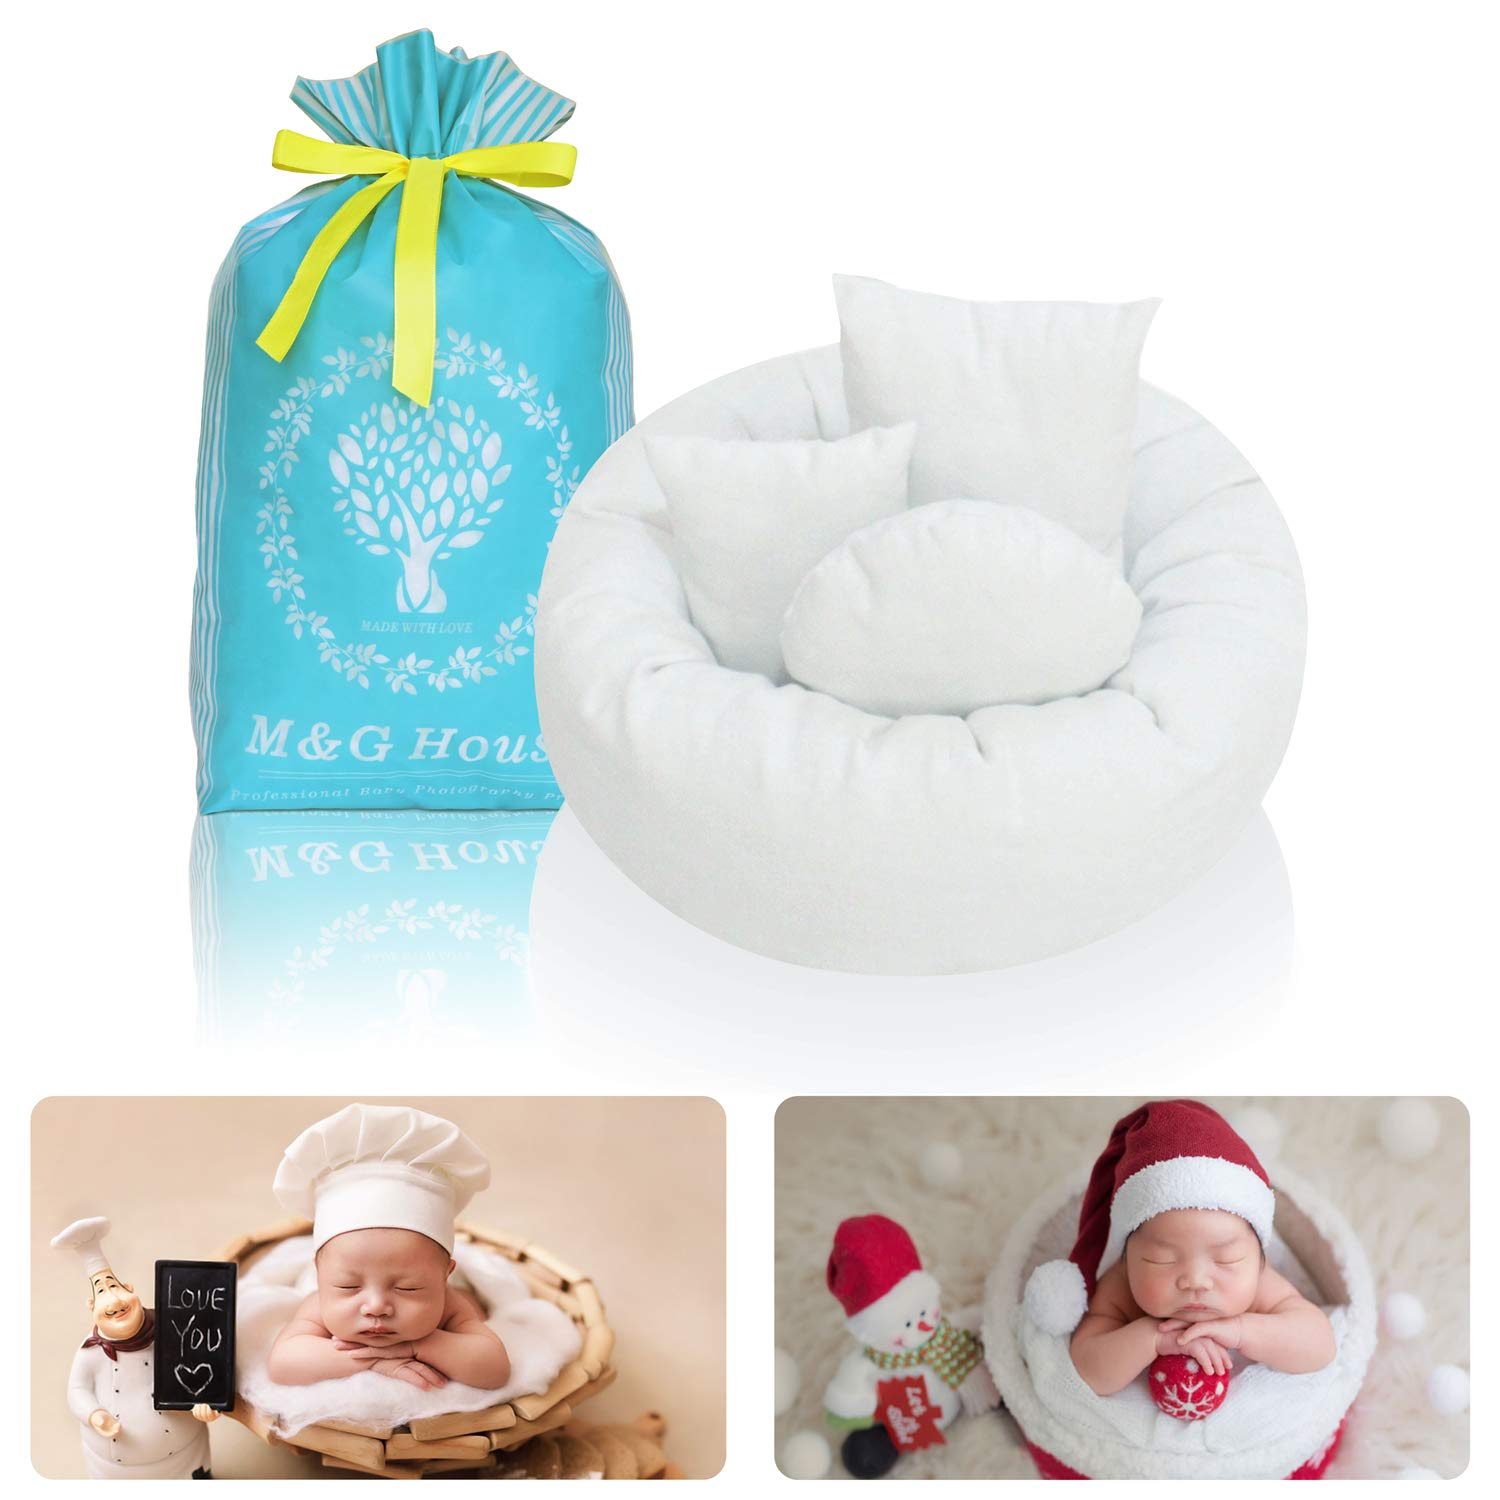 4PC Newborn Photo Props | Baby Photography Basket Pictures | Baby Shower Gift | Infant Posing Props (1 Photo Donut and 3 Posing Pillows) by M&G House